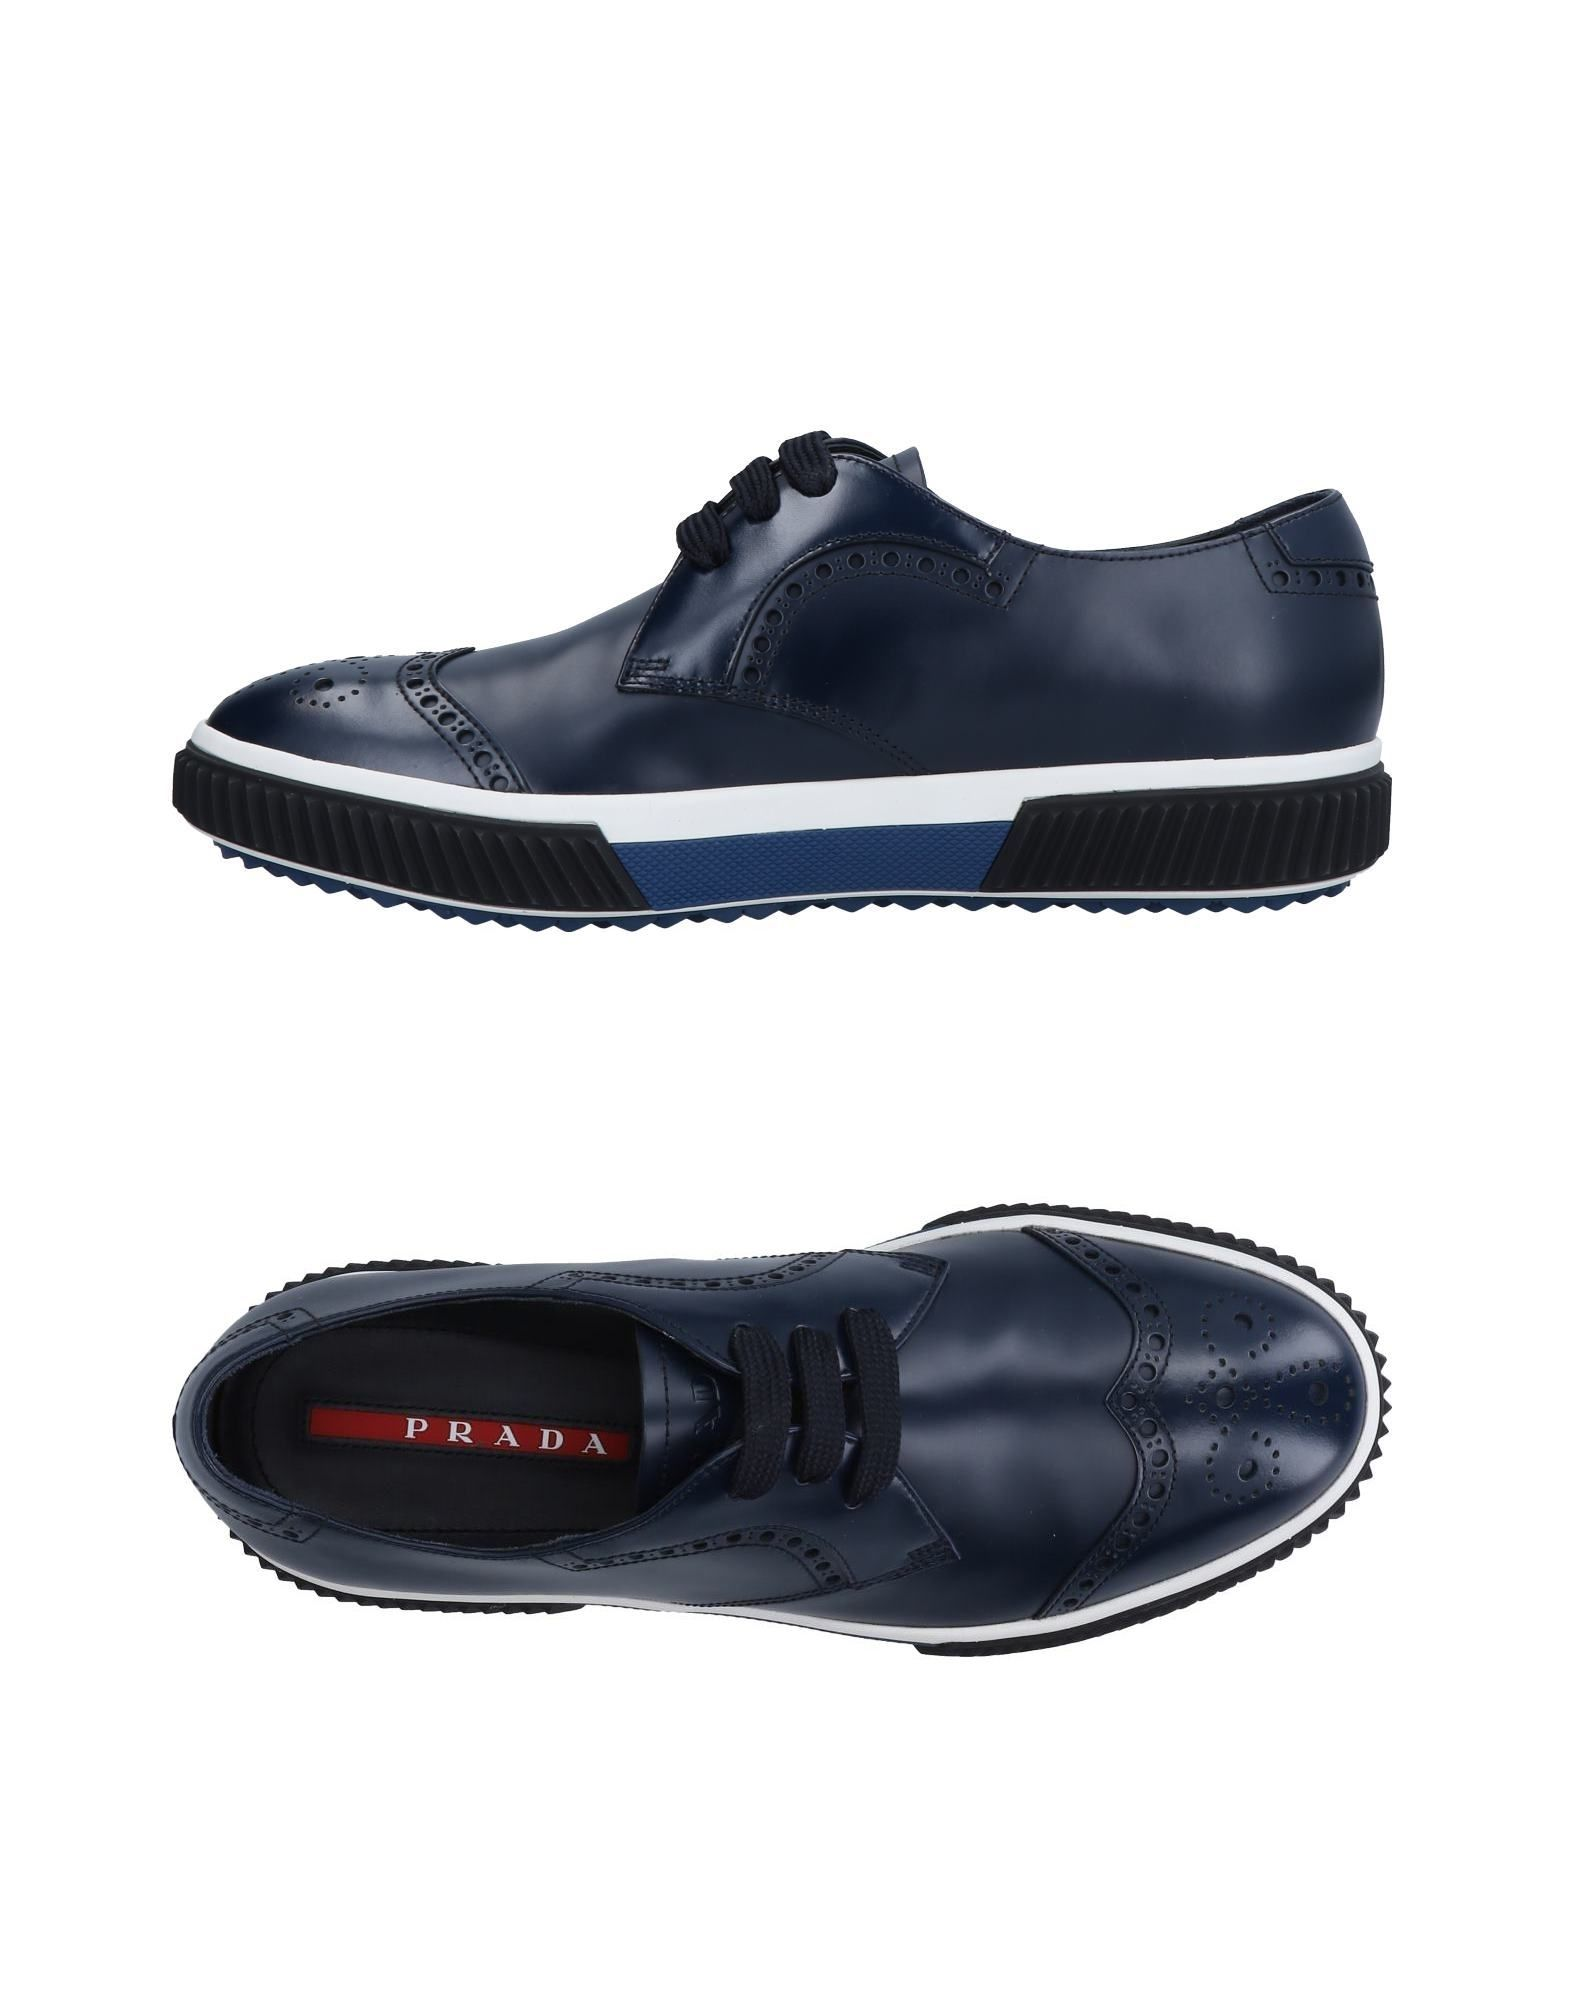 Sneakers Prada Sport Homme - Sneakers Prada Sport  Bleu foncé Chaussures casual sauvages